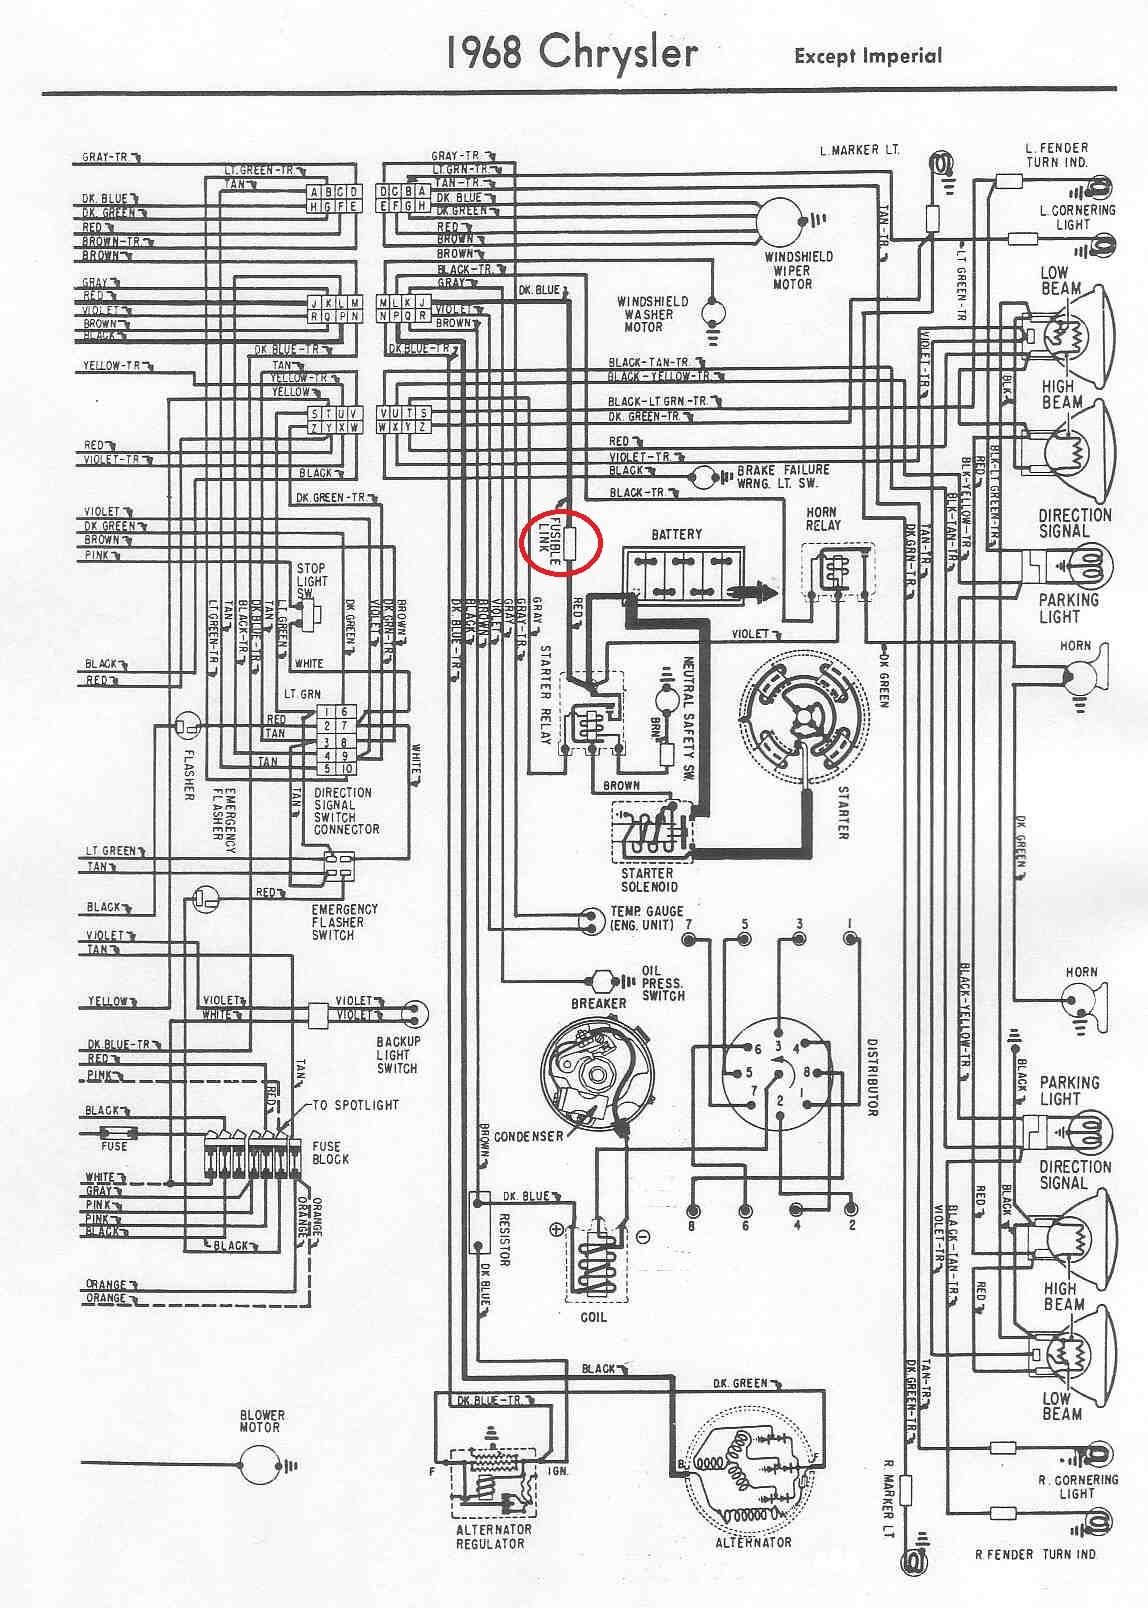 1950 Chrysler Imperial Wiring Schematics Electrical Diagrams Bass Tracker 1963 Diagram Enthusiast U2022